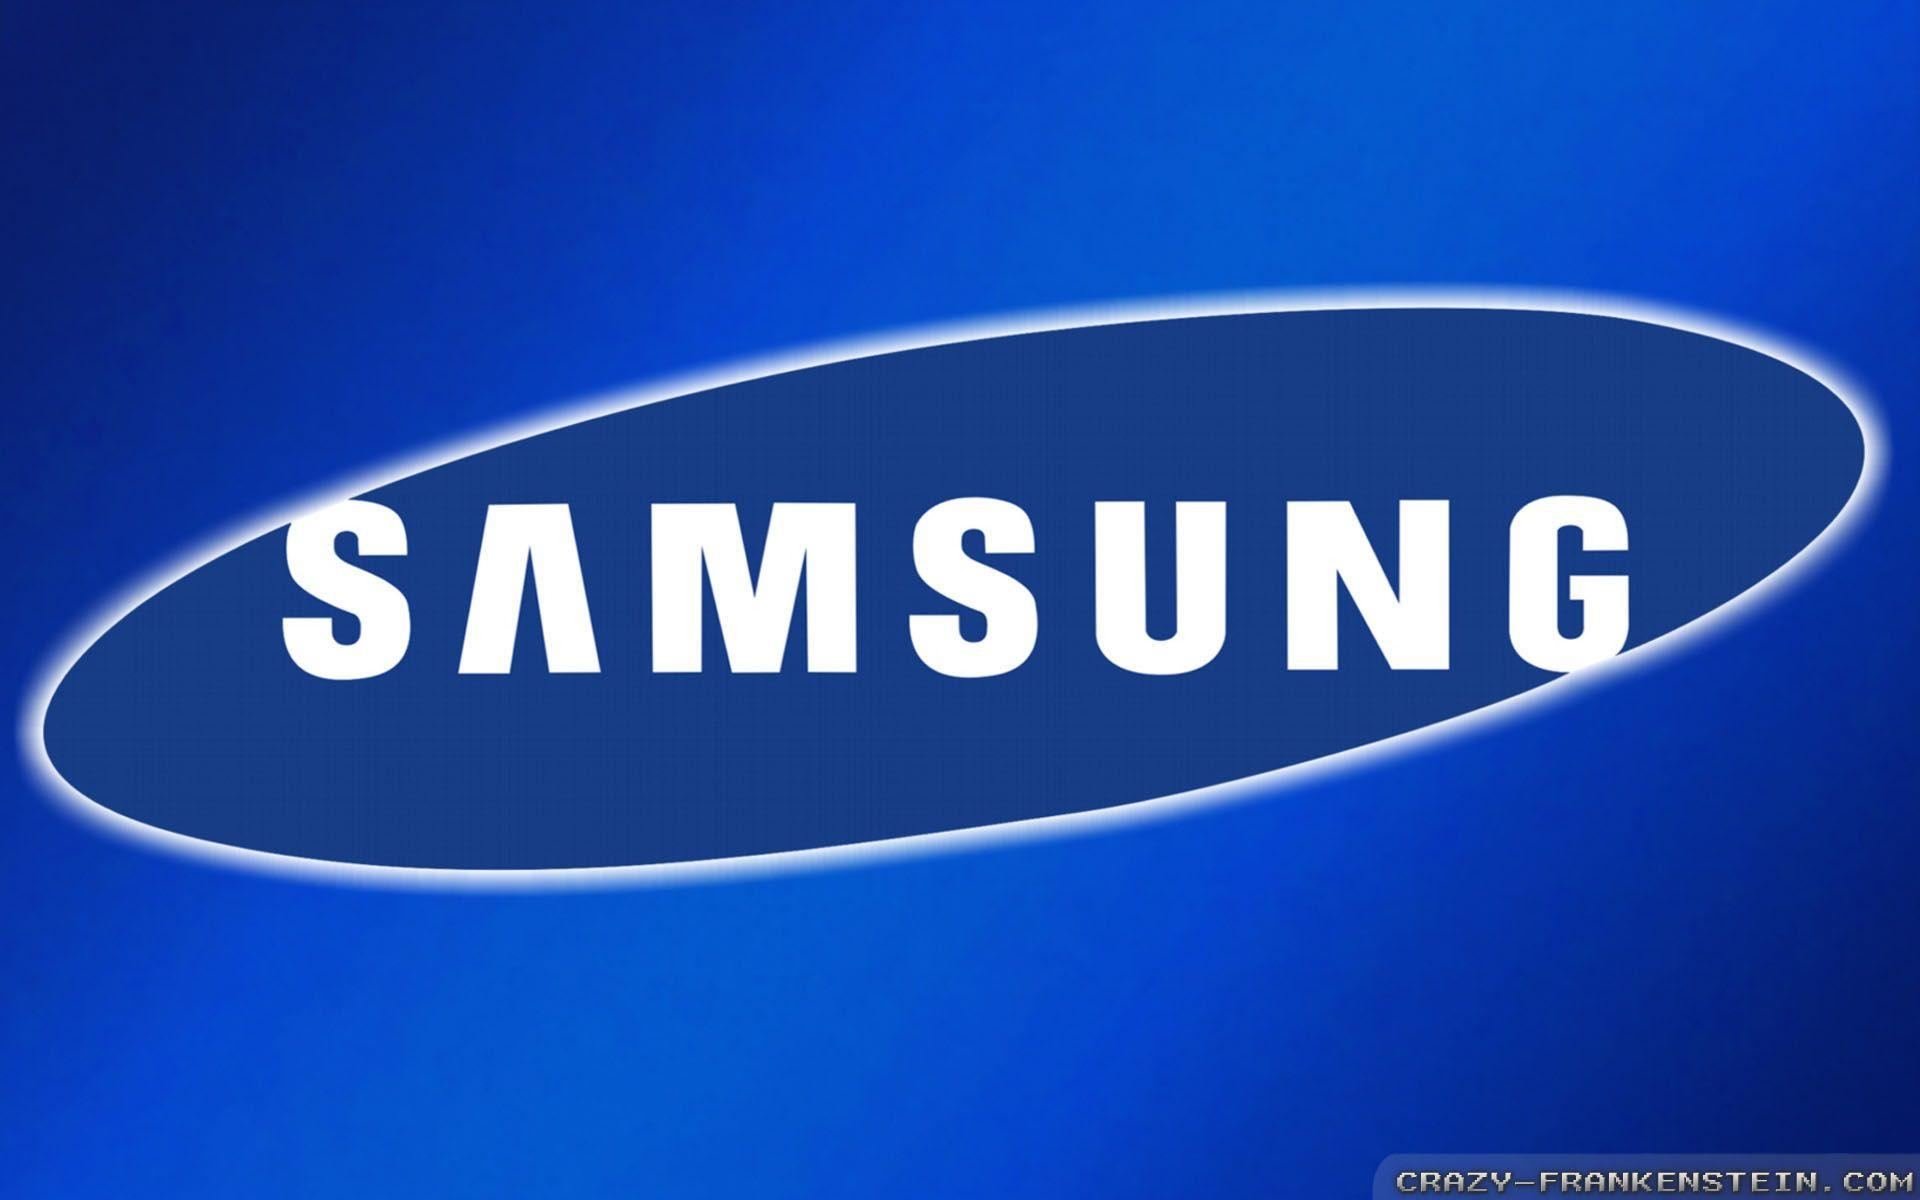 Samsung Wallpapers - Full HD wallpaper search